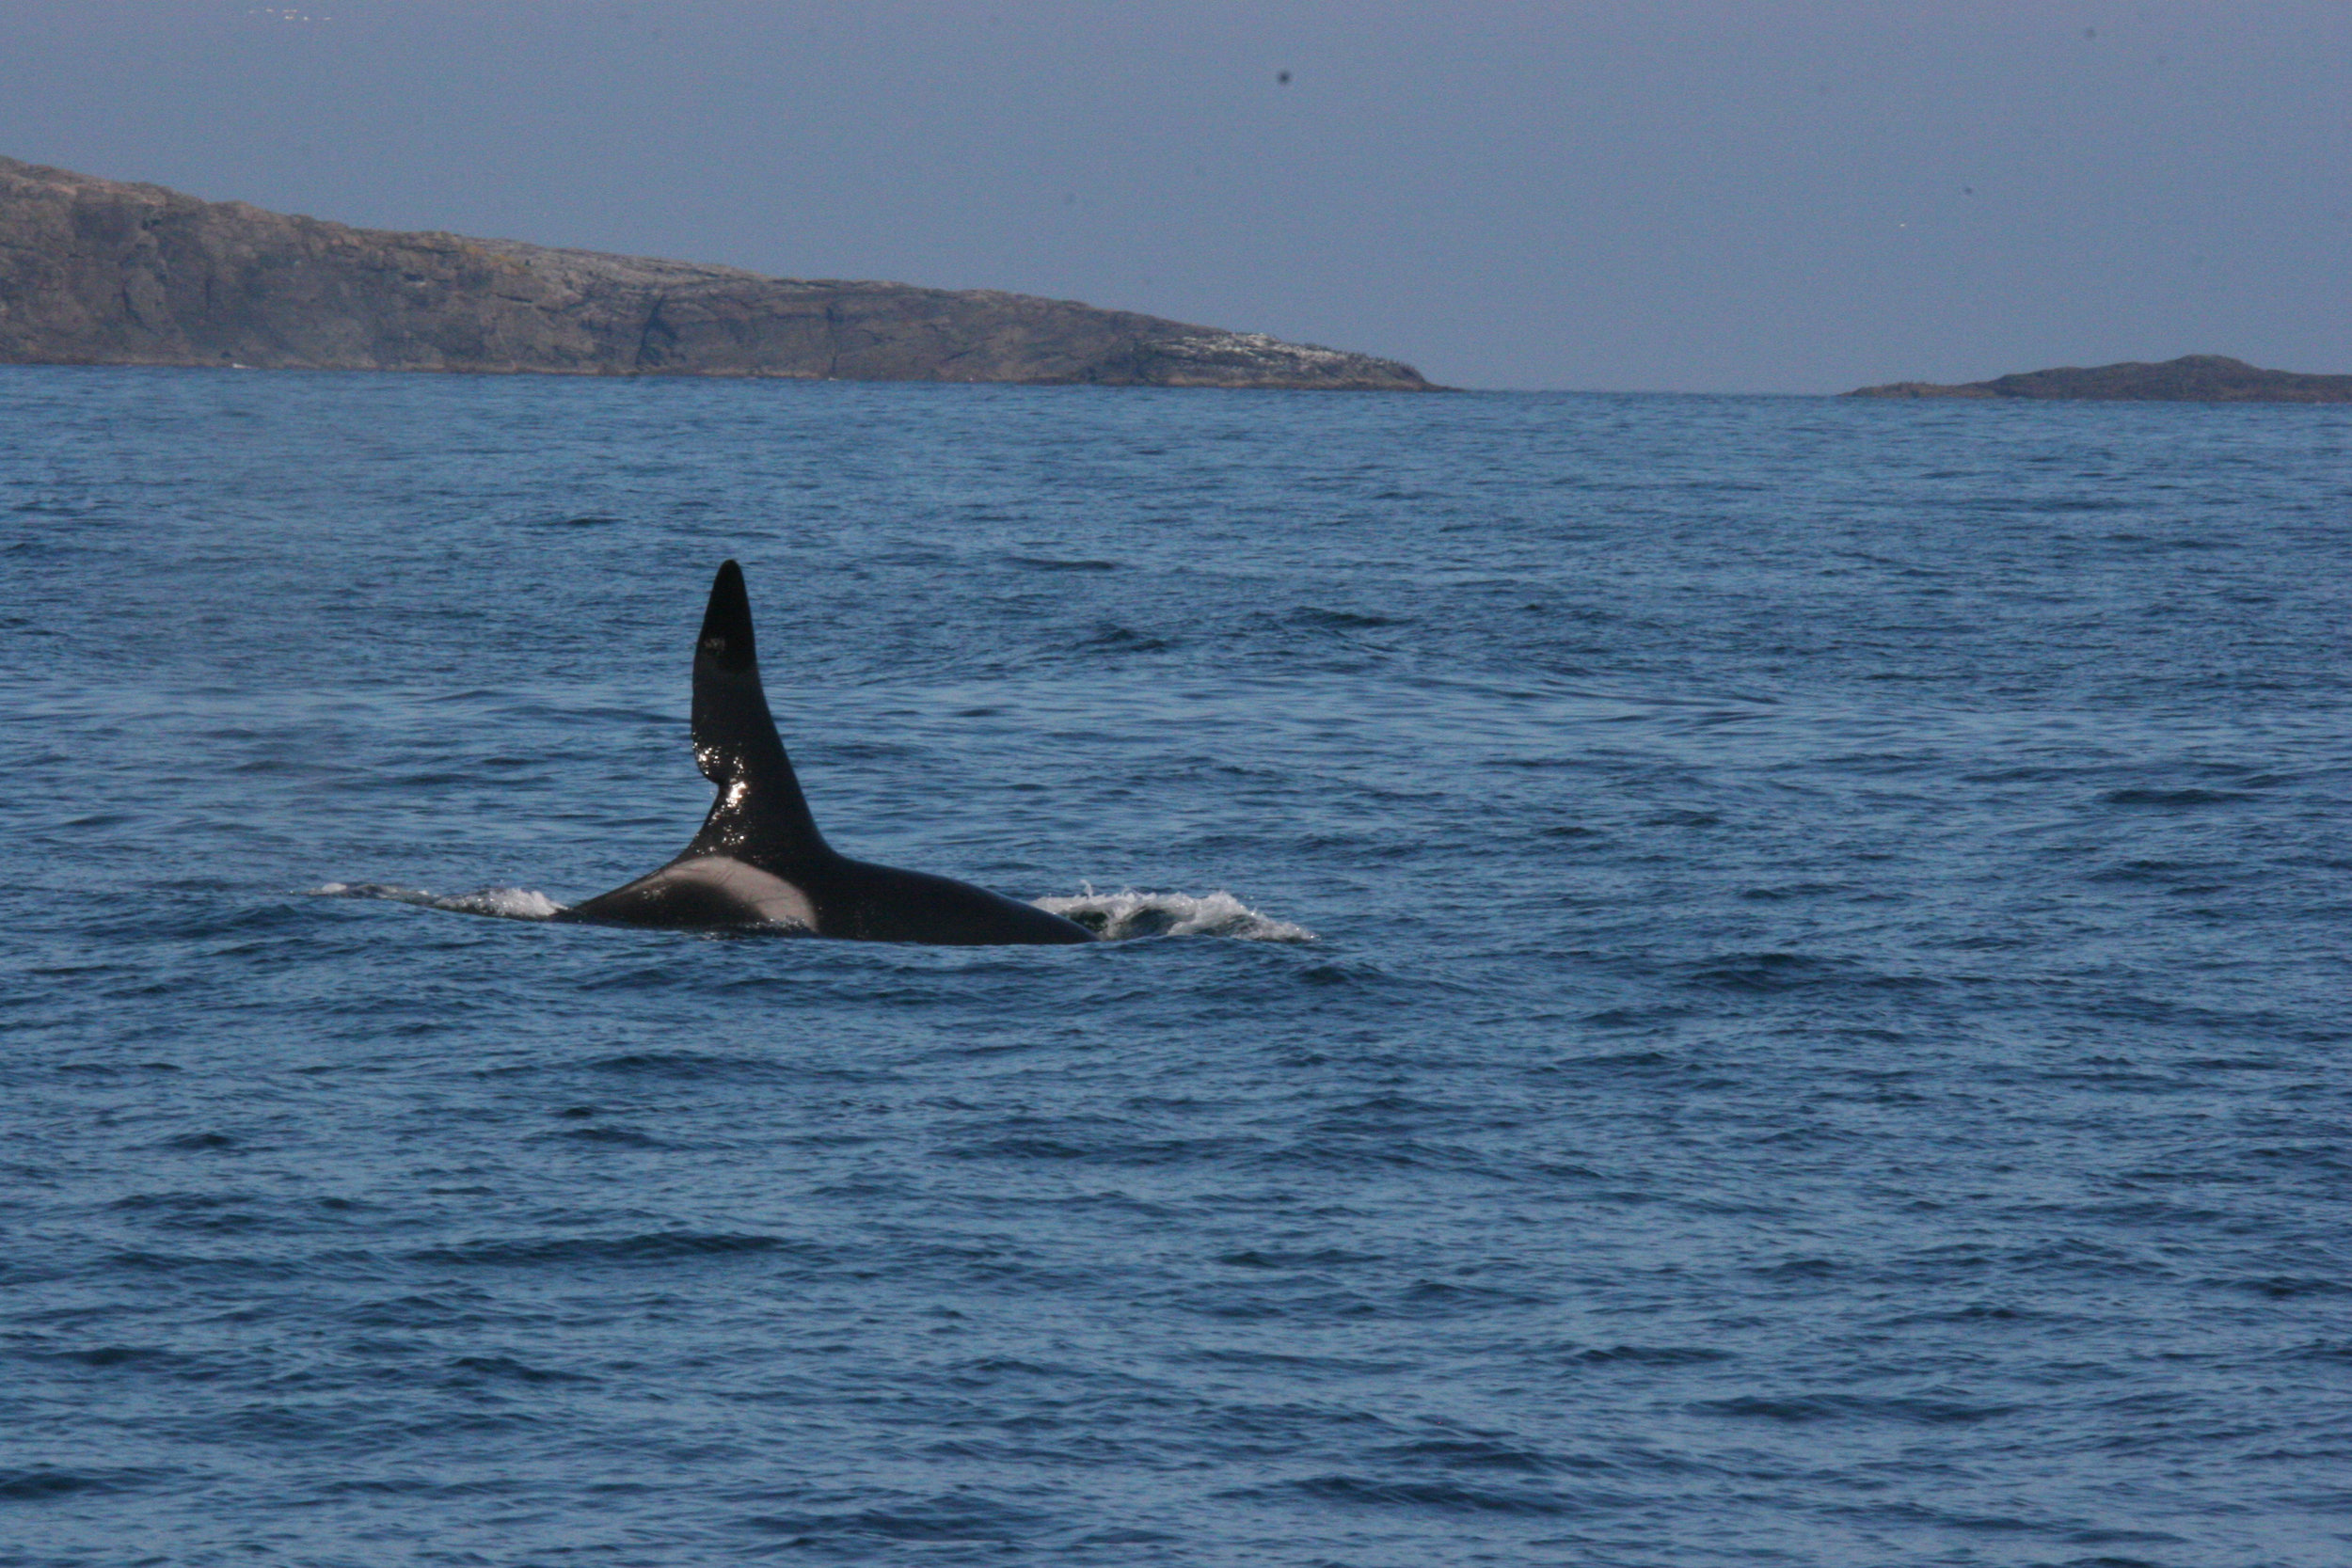 the unmistakable dorsal fin of John Coe, one of the males in the West Coast Community